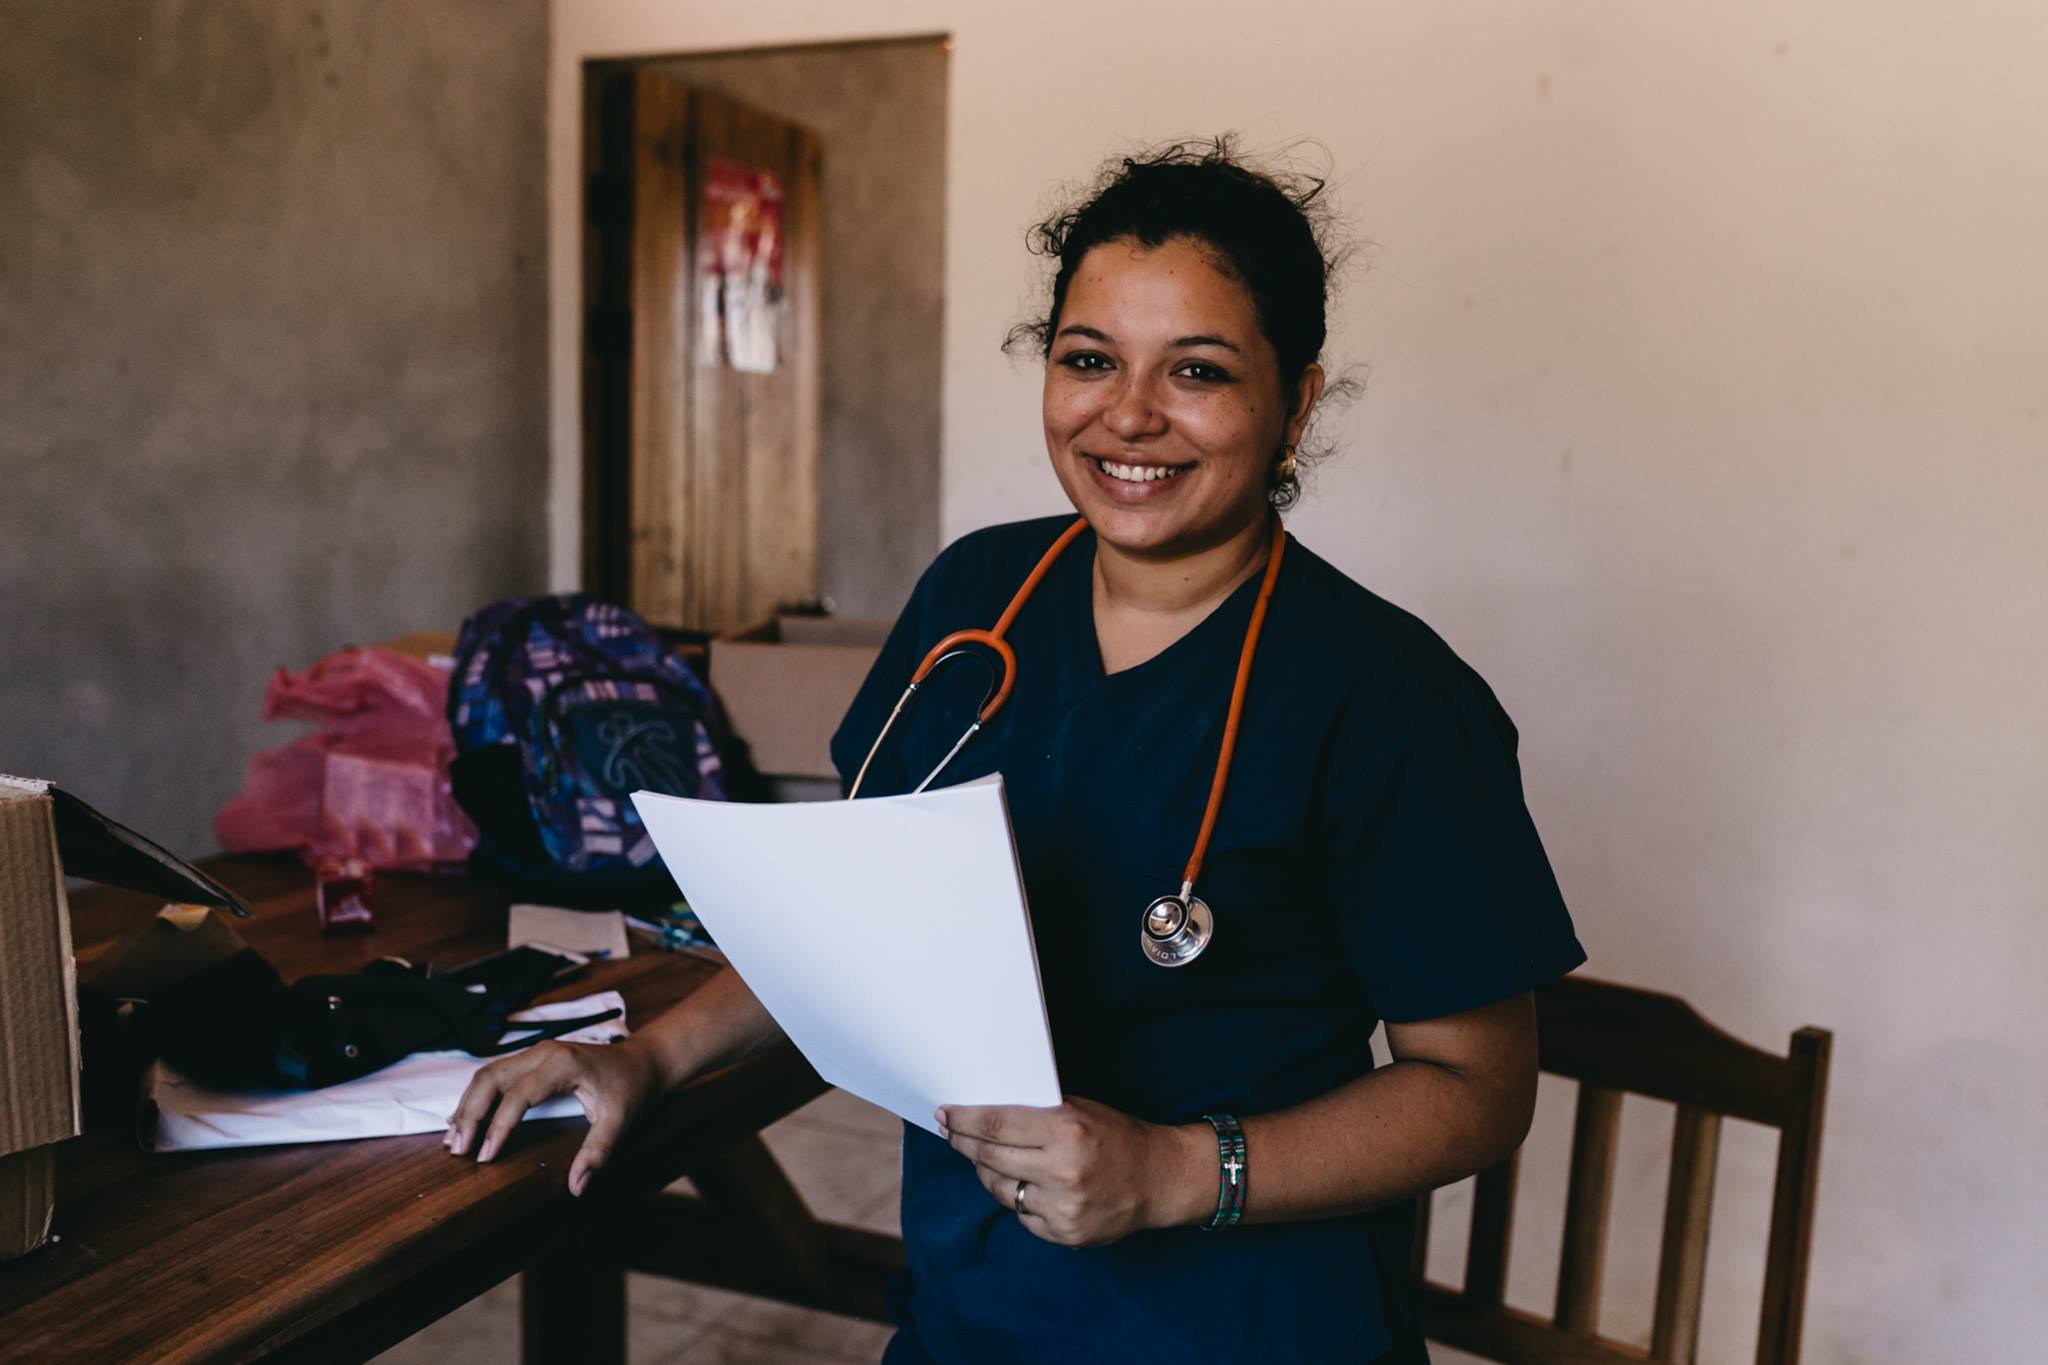 Muriel: Making women who have never received medical care feel safe + at ease